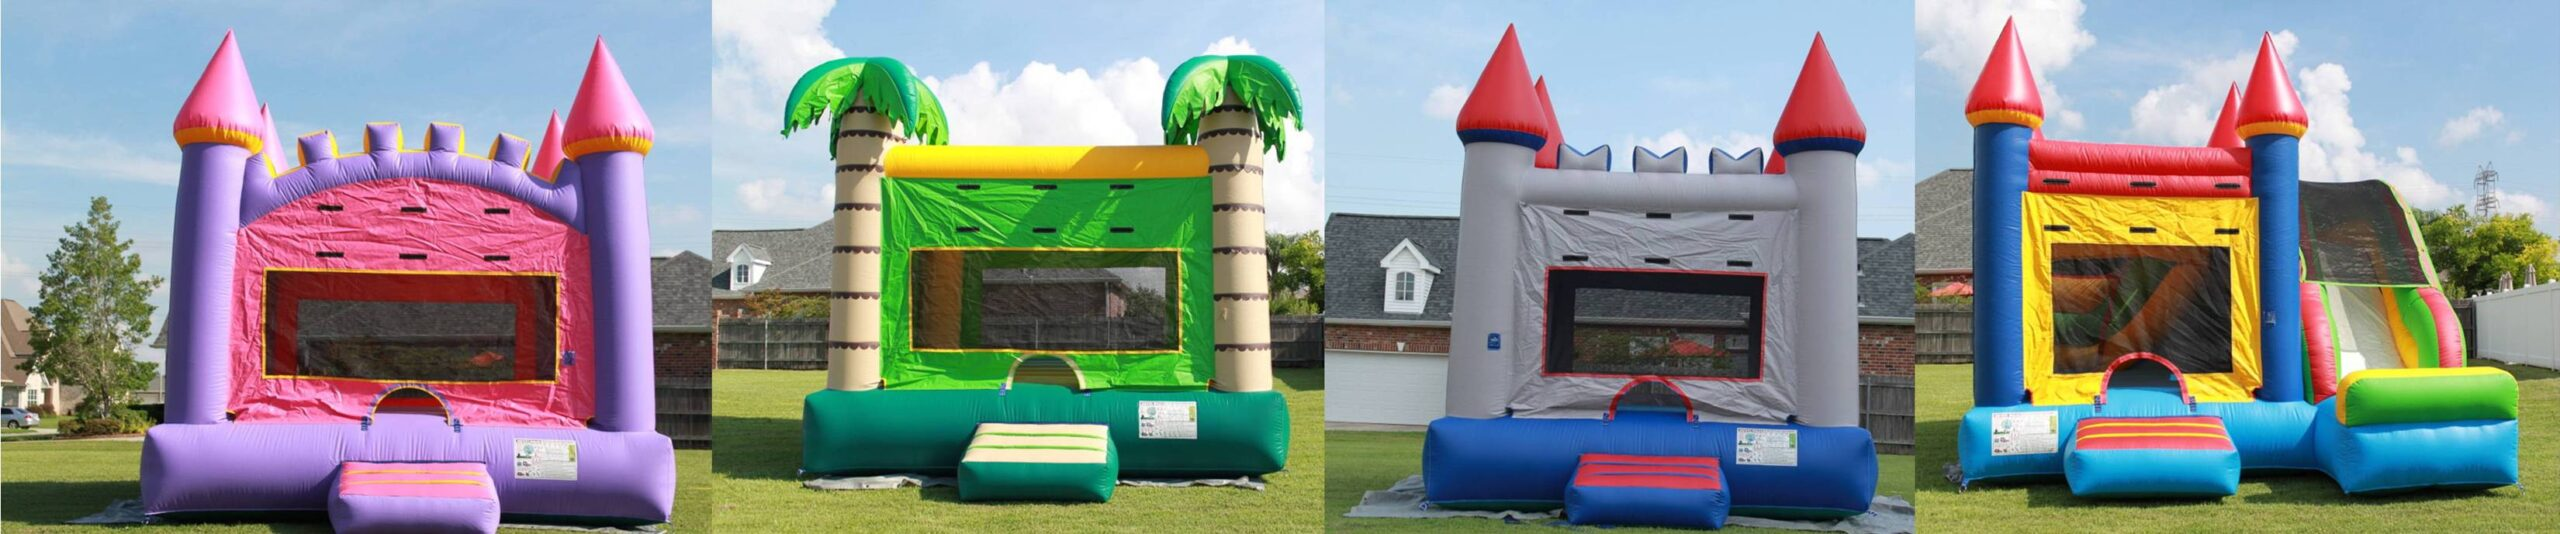 Inflatable bounce house rentals in New Orleans